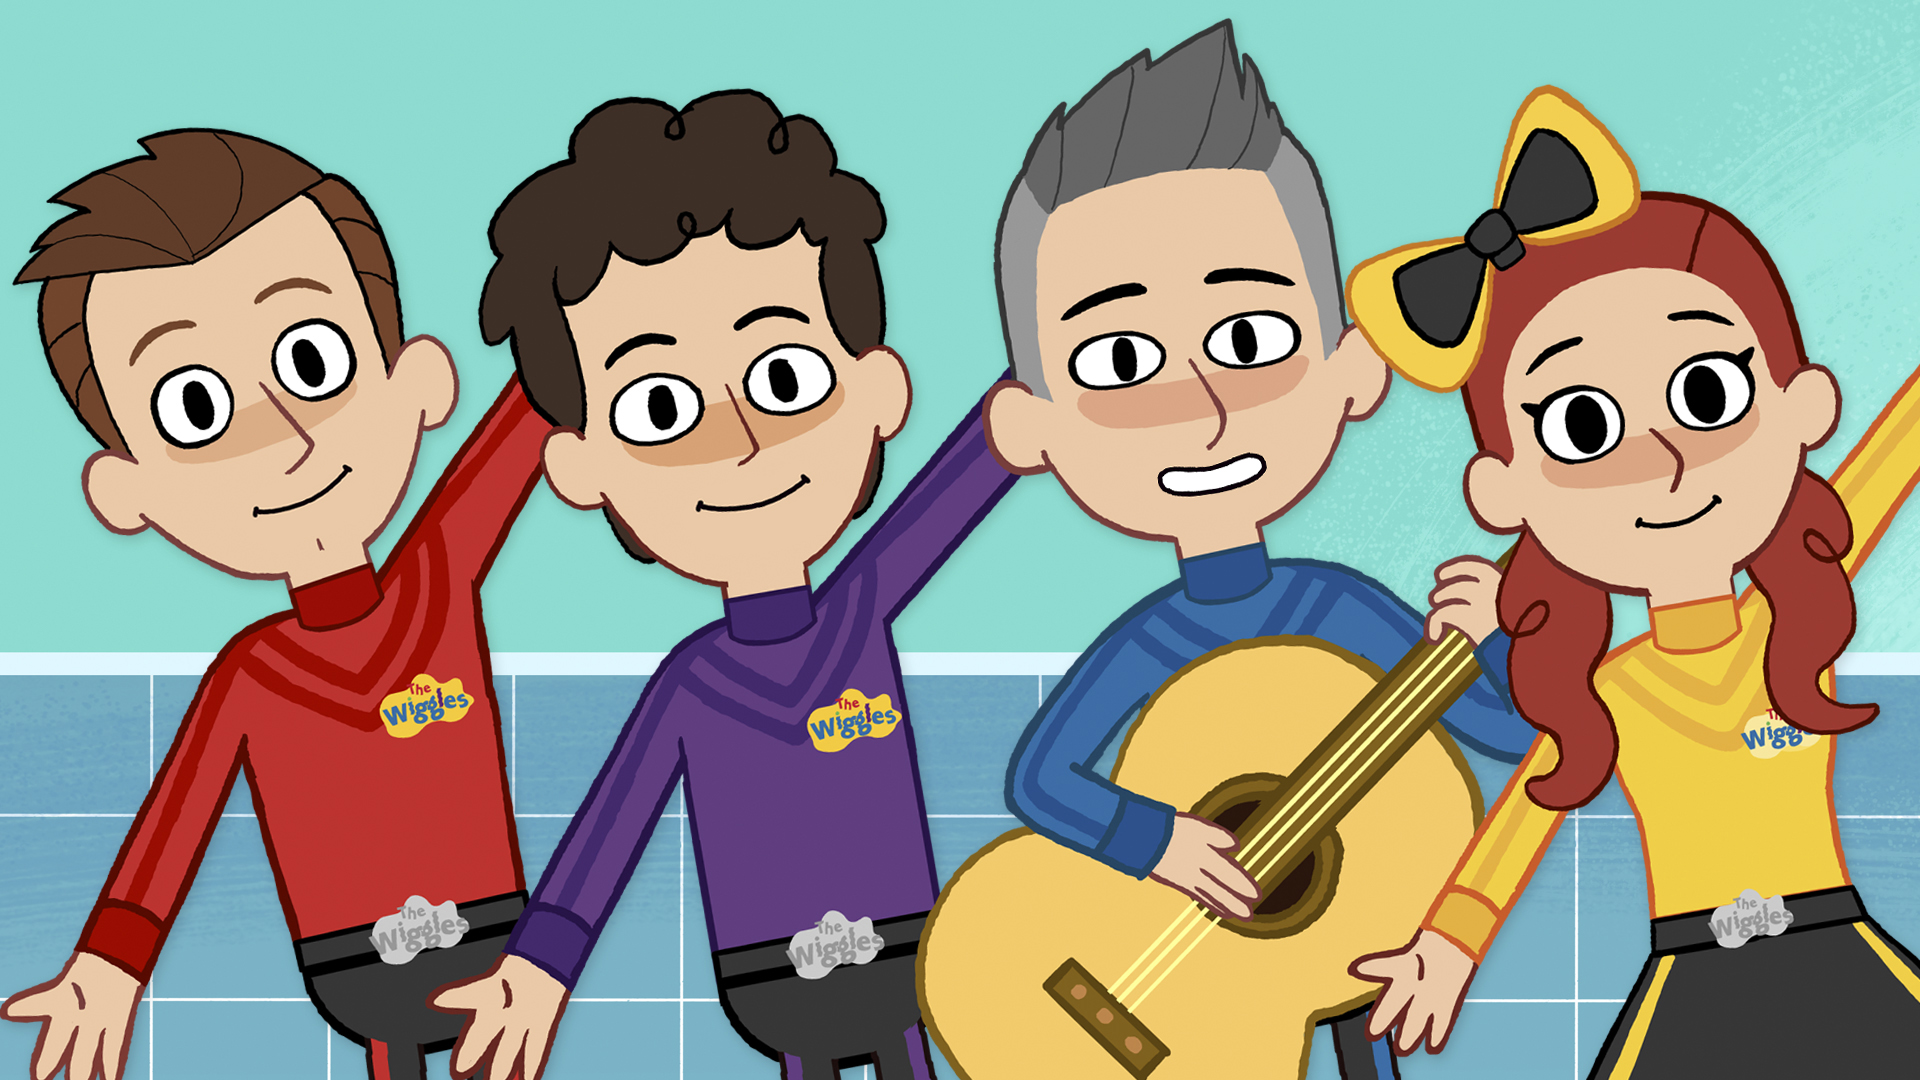 Skyship Entertainment welcomes The Wiggles to Super Simple January